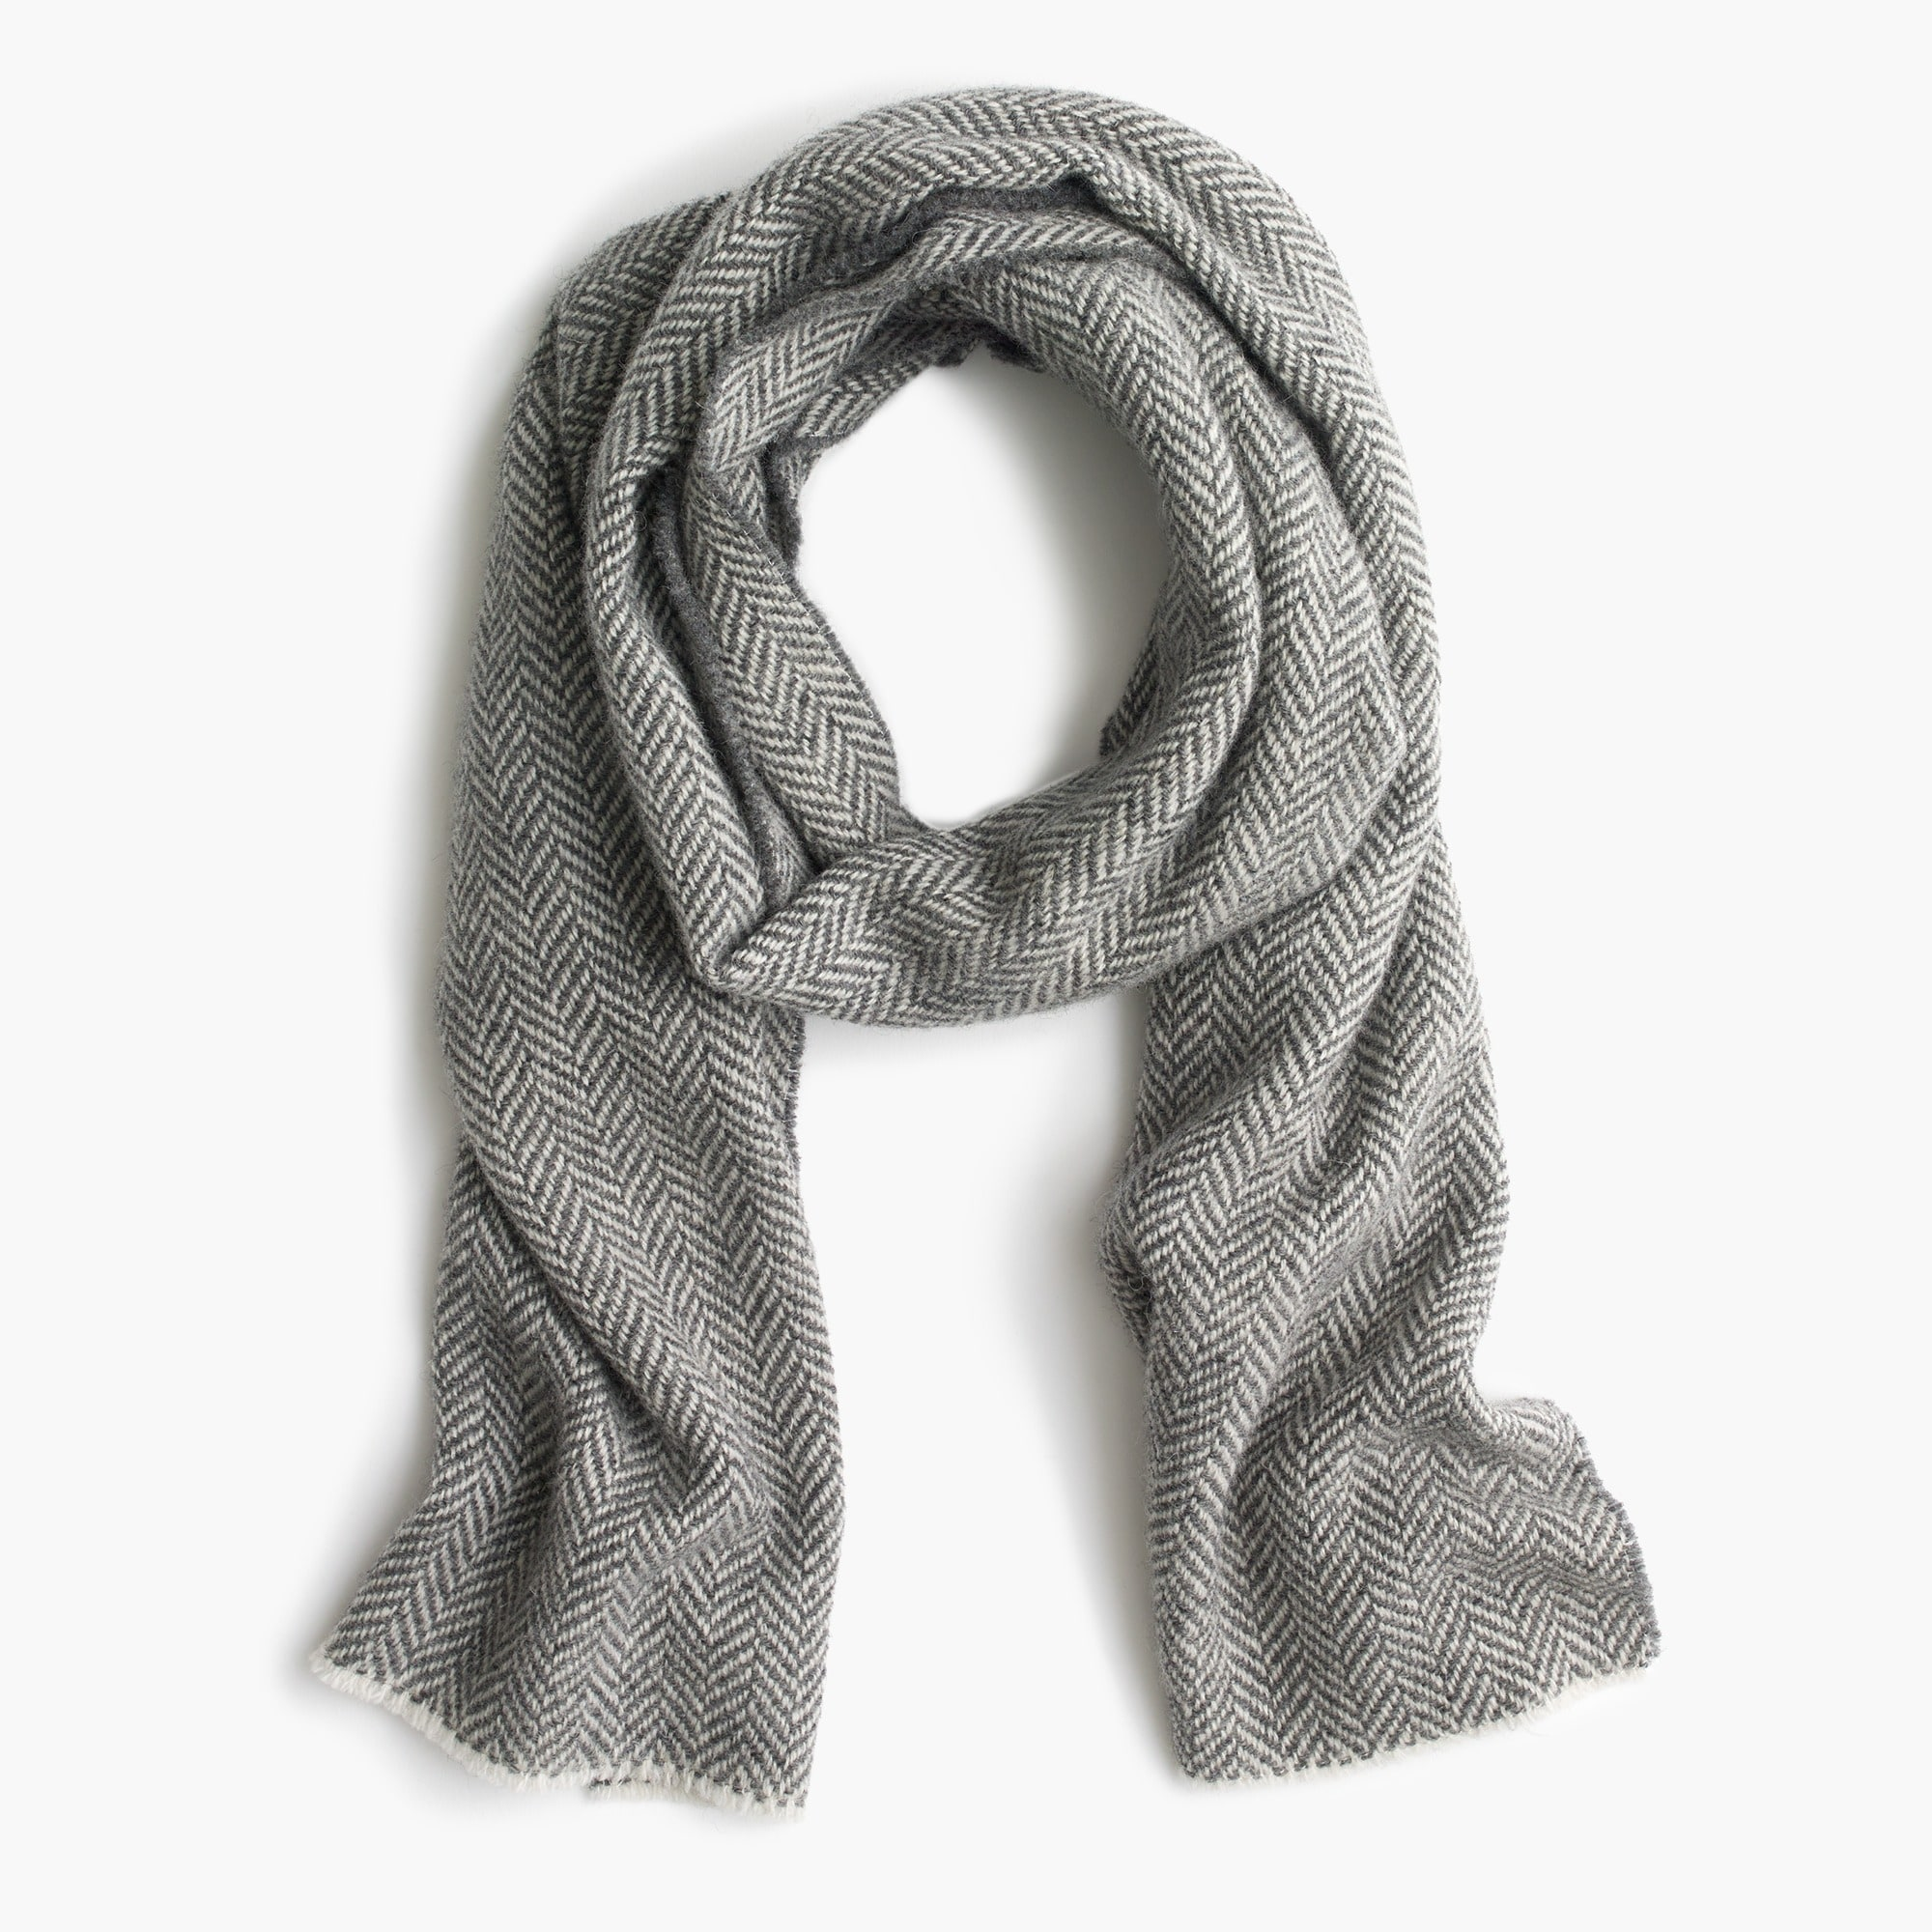 Image 1 for Herringbone twill wool scarf